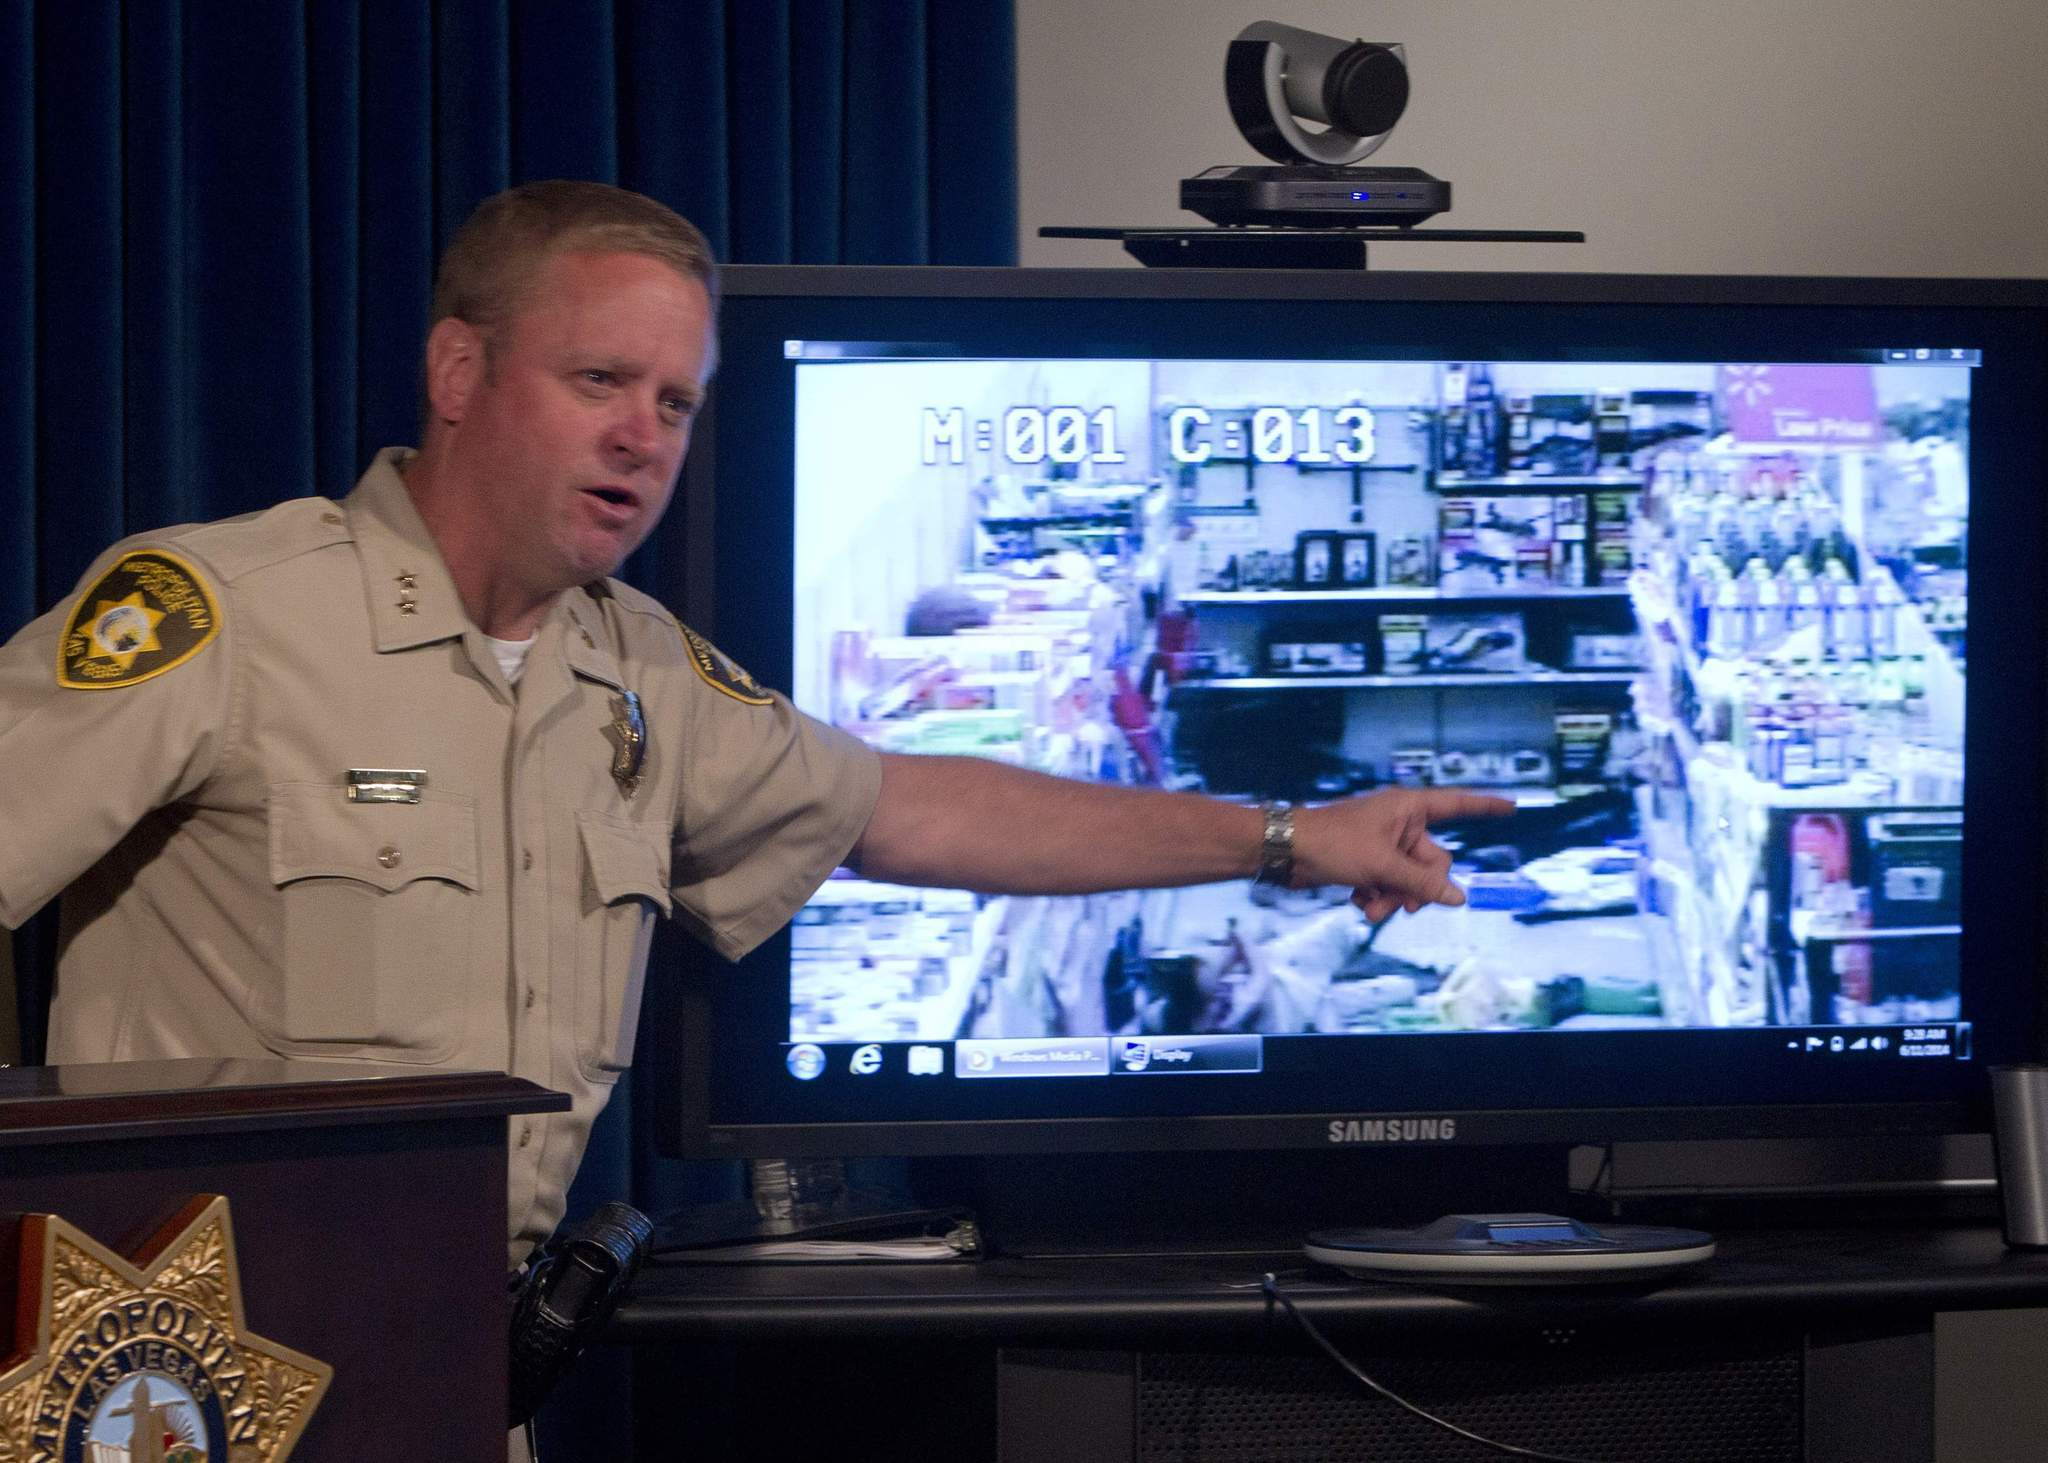 Assistant Sheriff Kevin McMahill points to Wal-Mart store surveillance video of shooting suspects Jerad Miller, 31, and his wife, Amanda Miller, 22, during a news conference at Las Vegas Metro Police headquarters in Las Vegas, Nevada June 11, 2014.